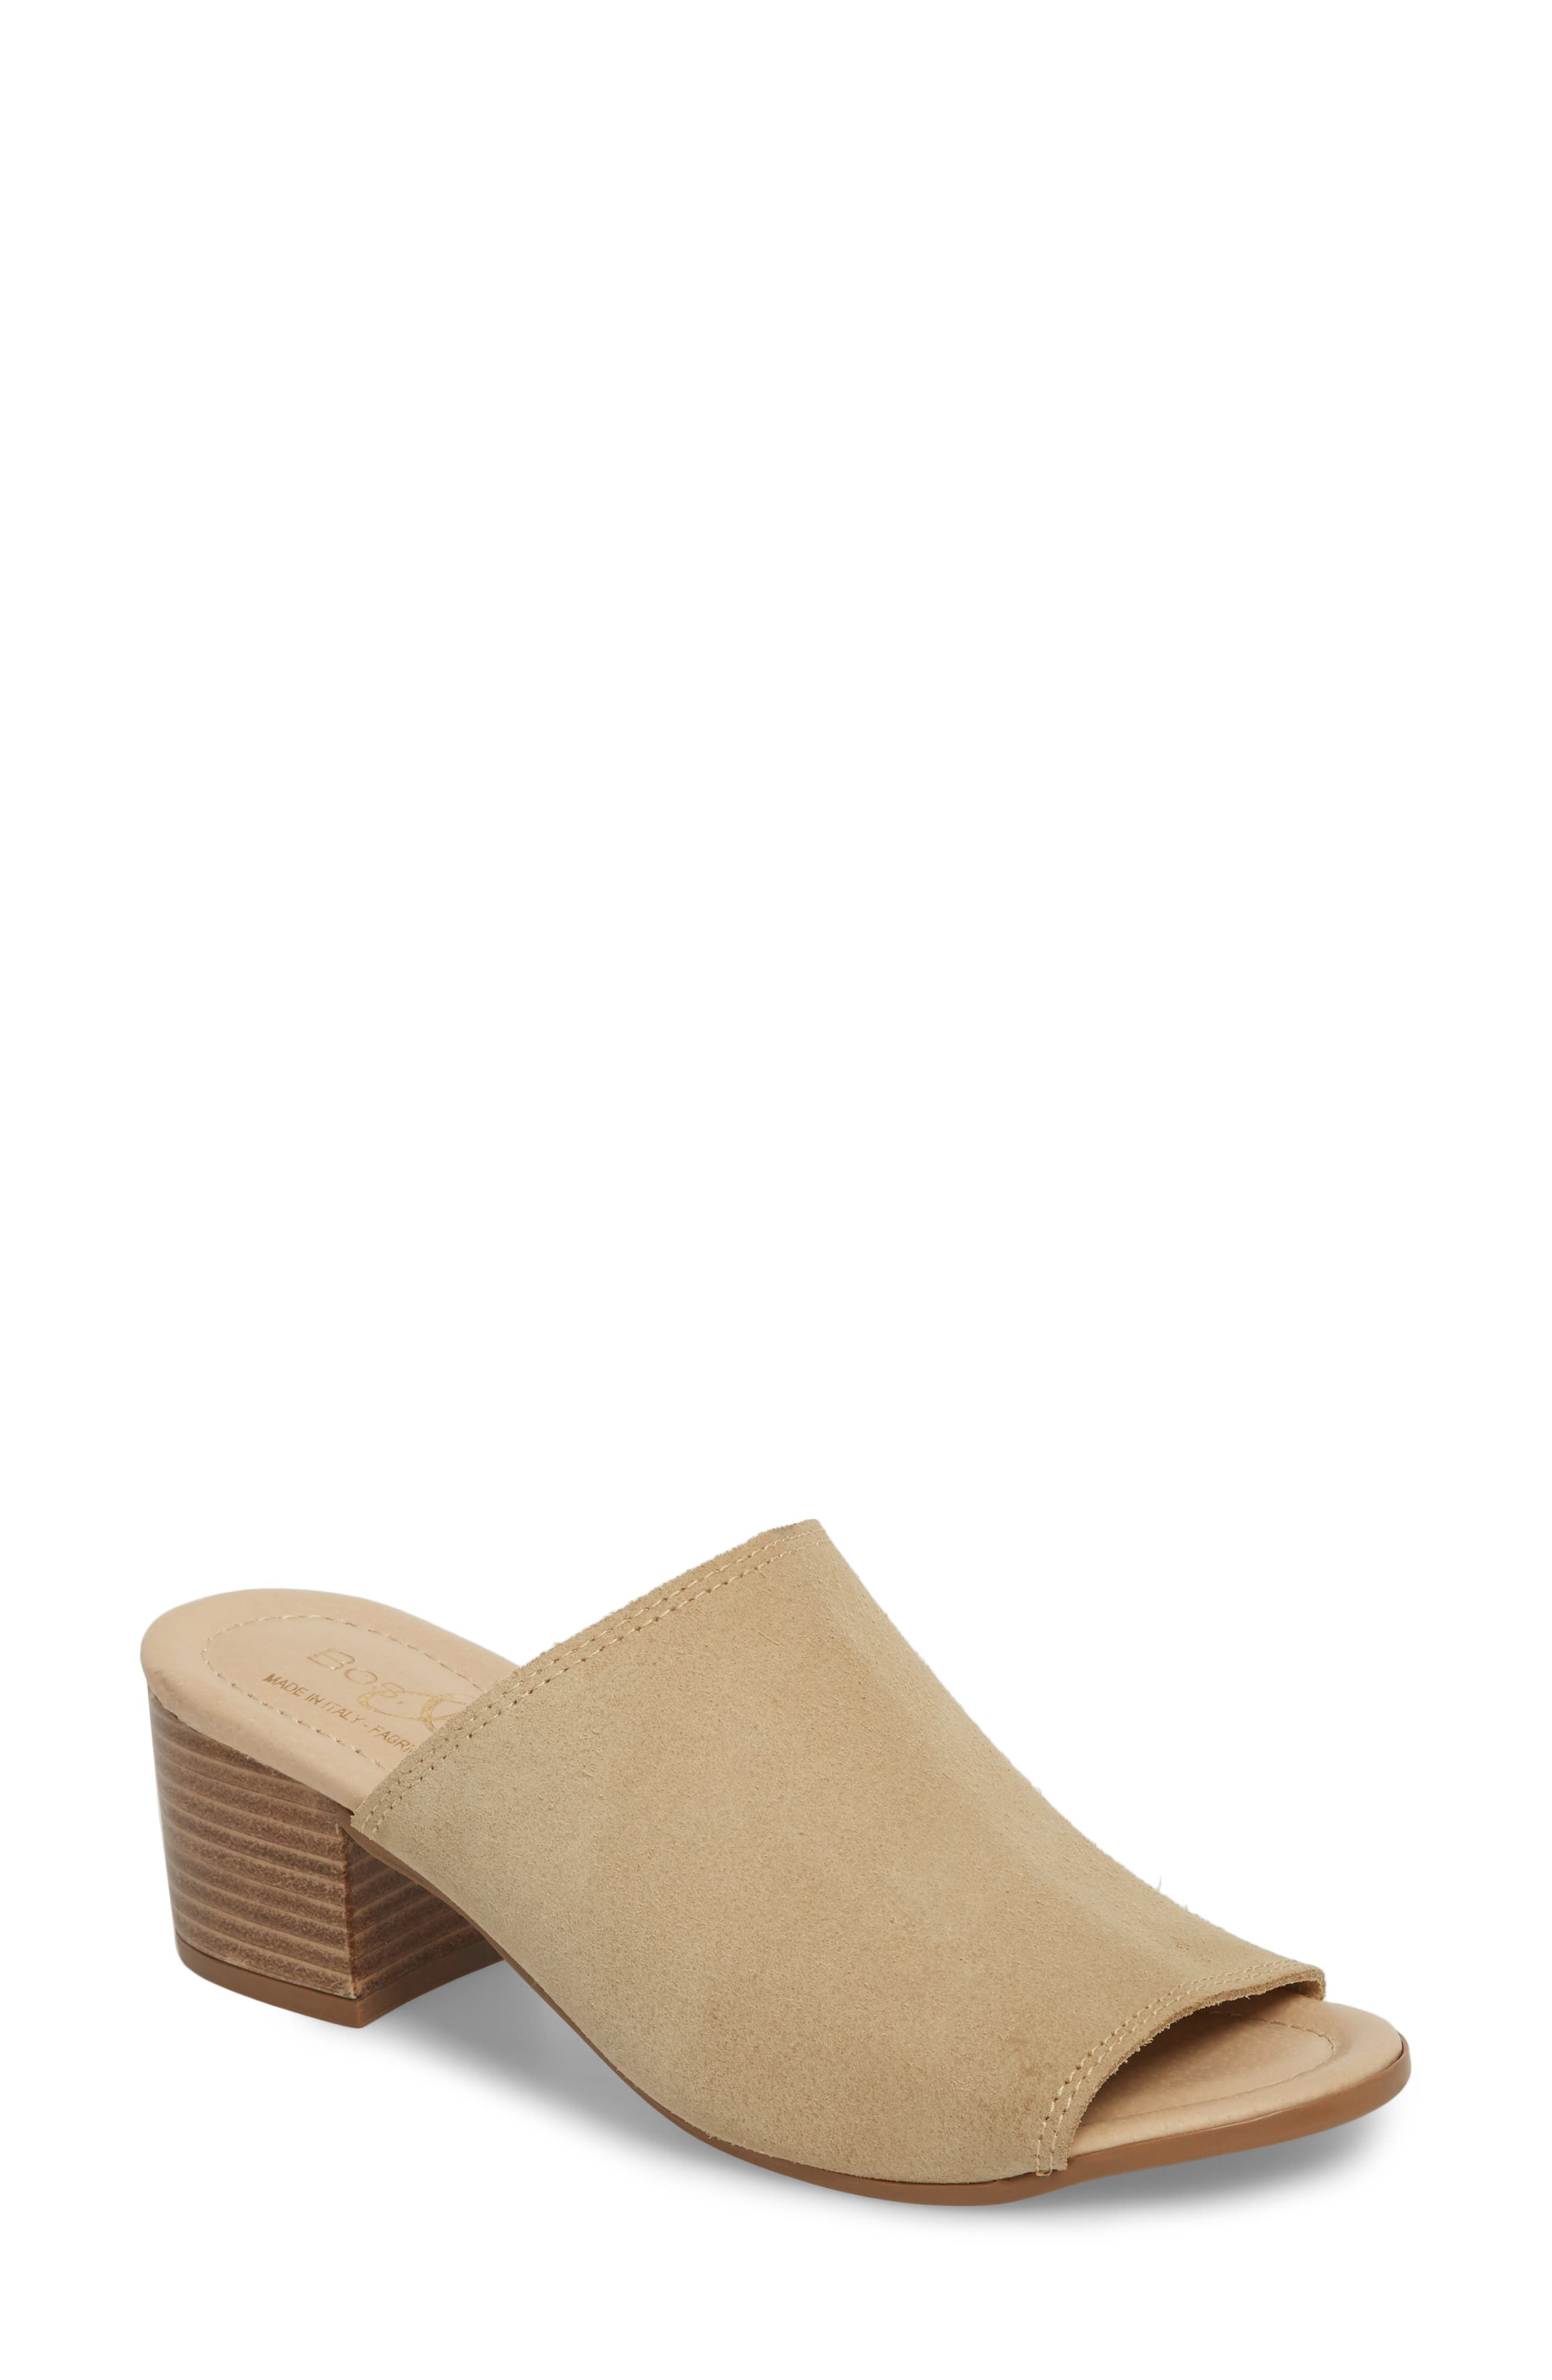 Fawn Mule,                         Main,                         color, Sand Crosta Leather